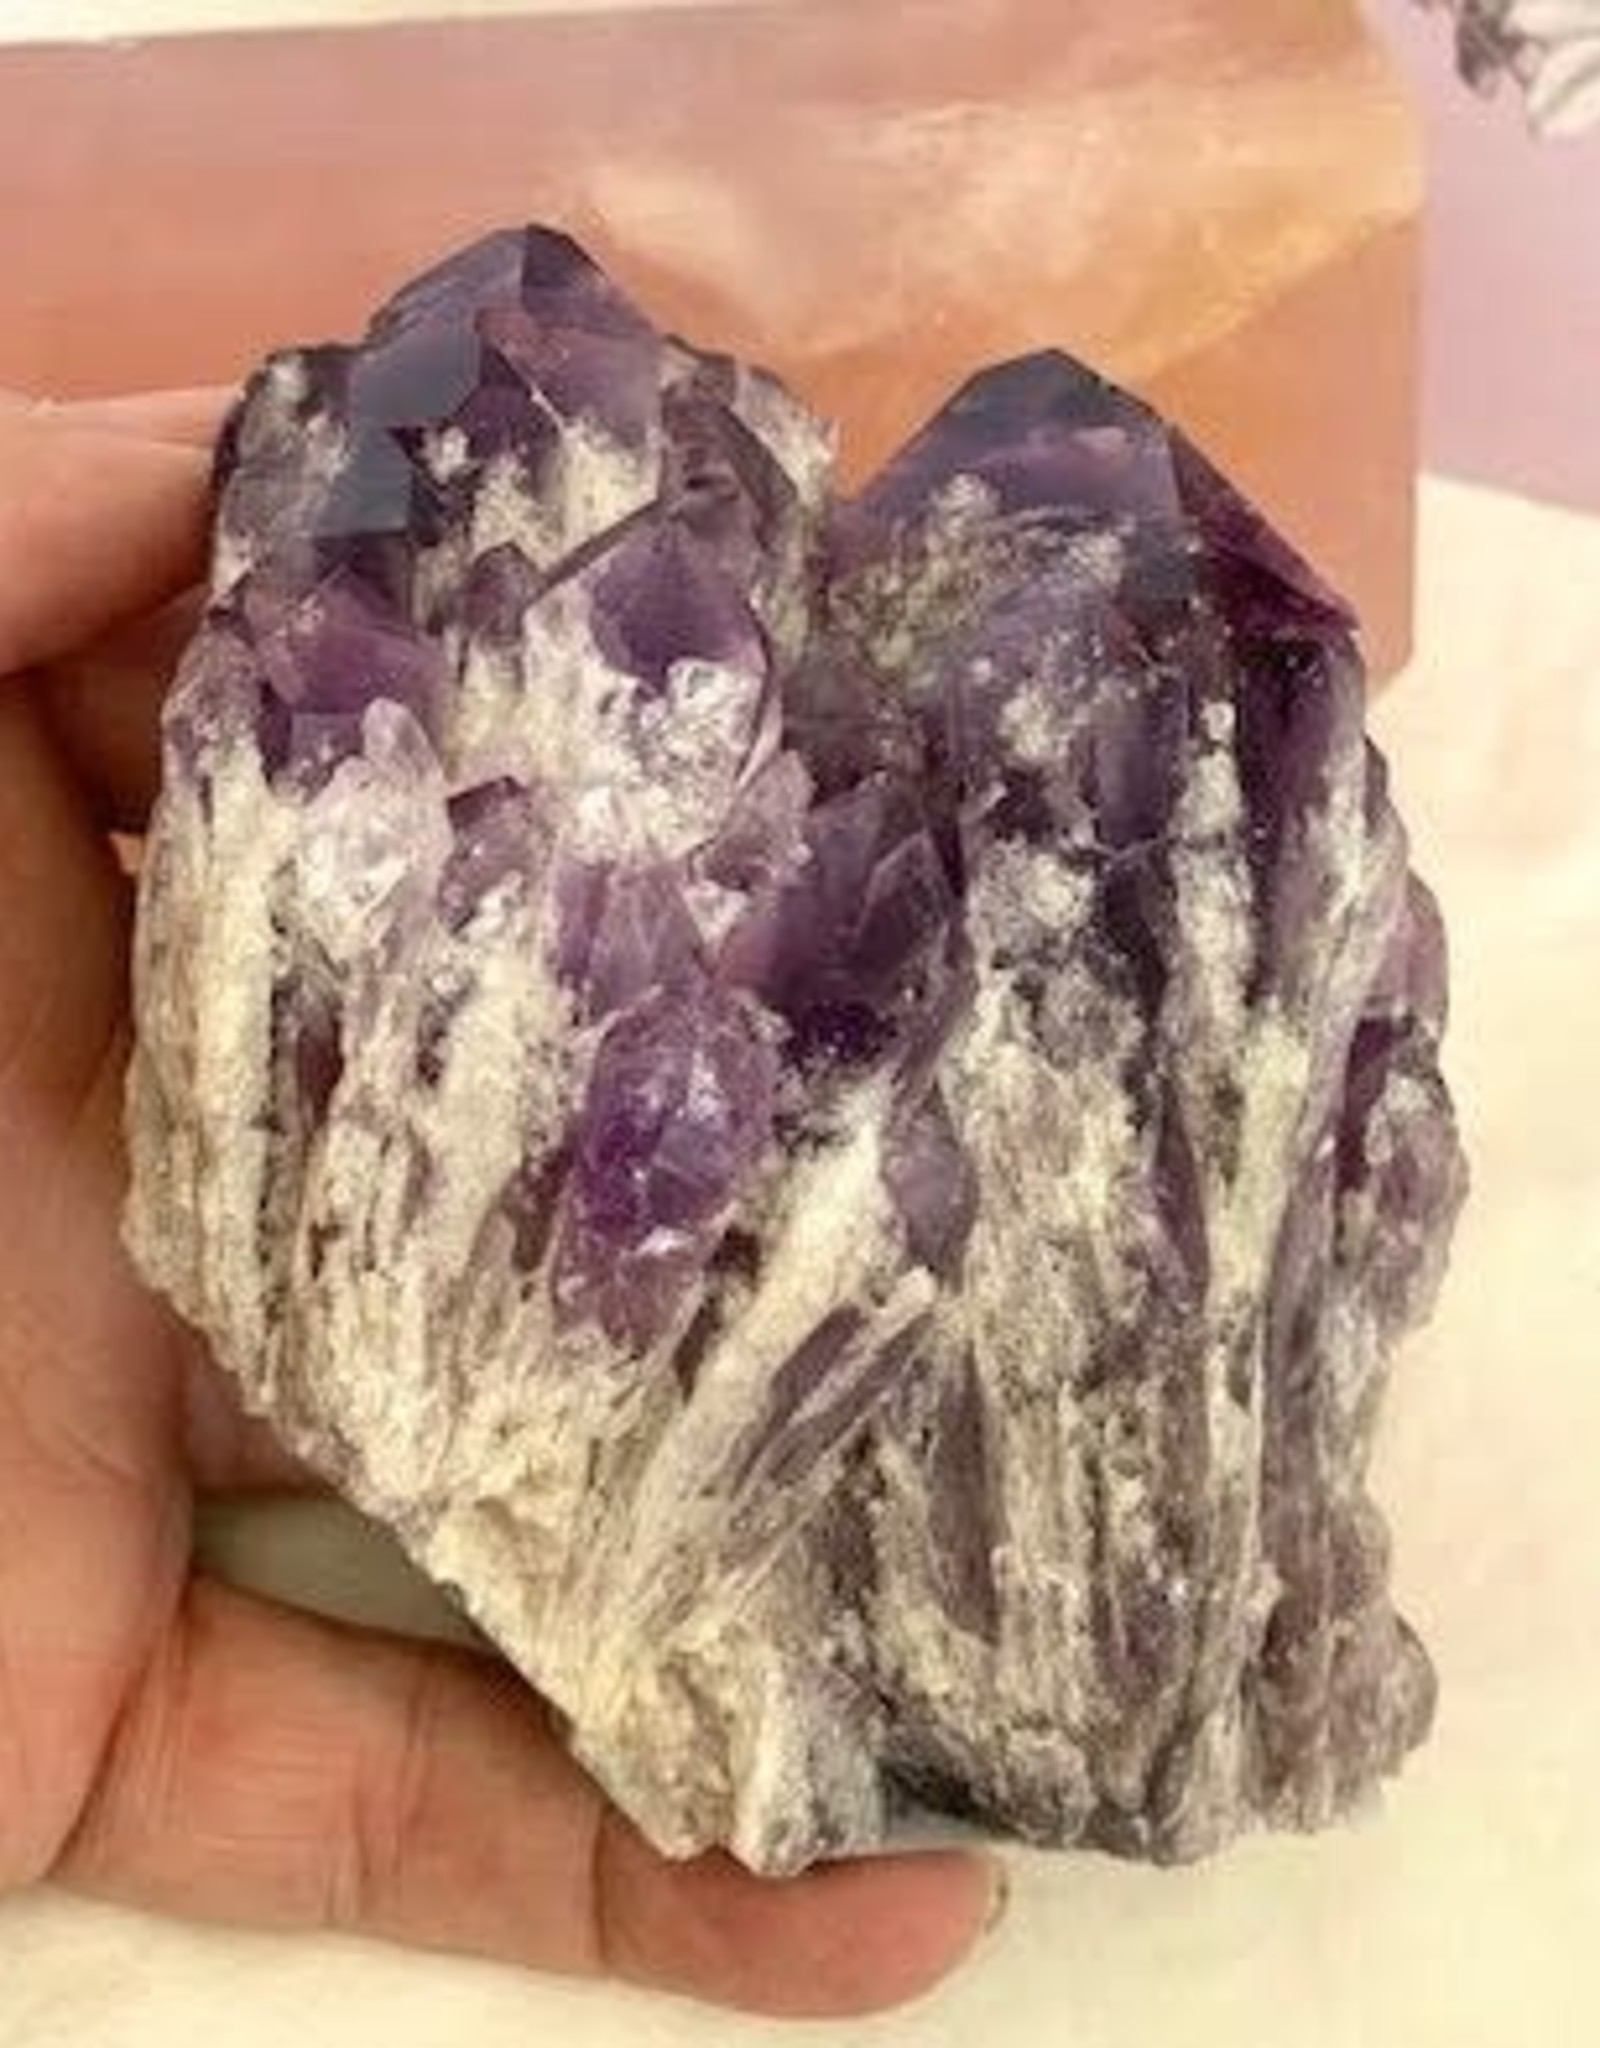 Amethyst Elestial Clusters for Spiritual Connection